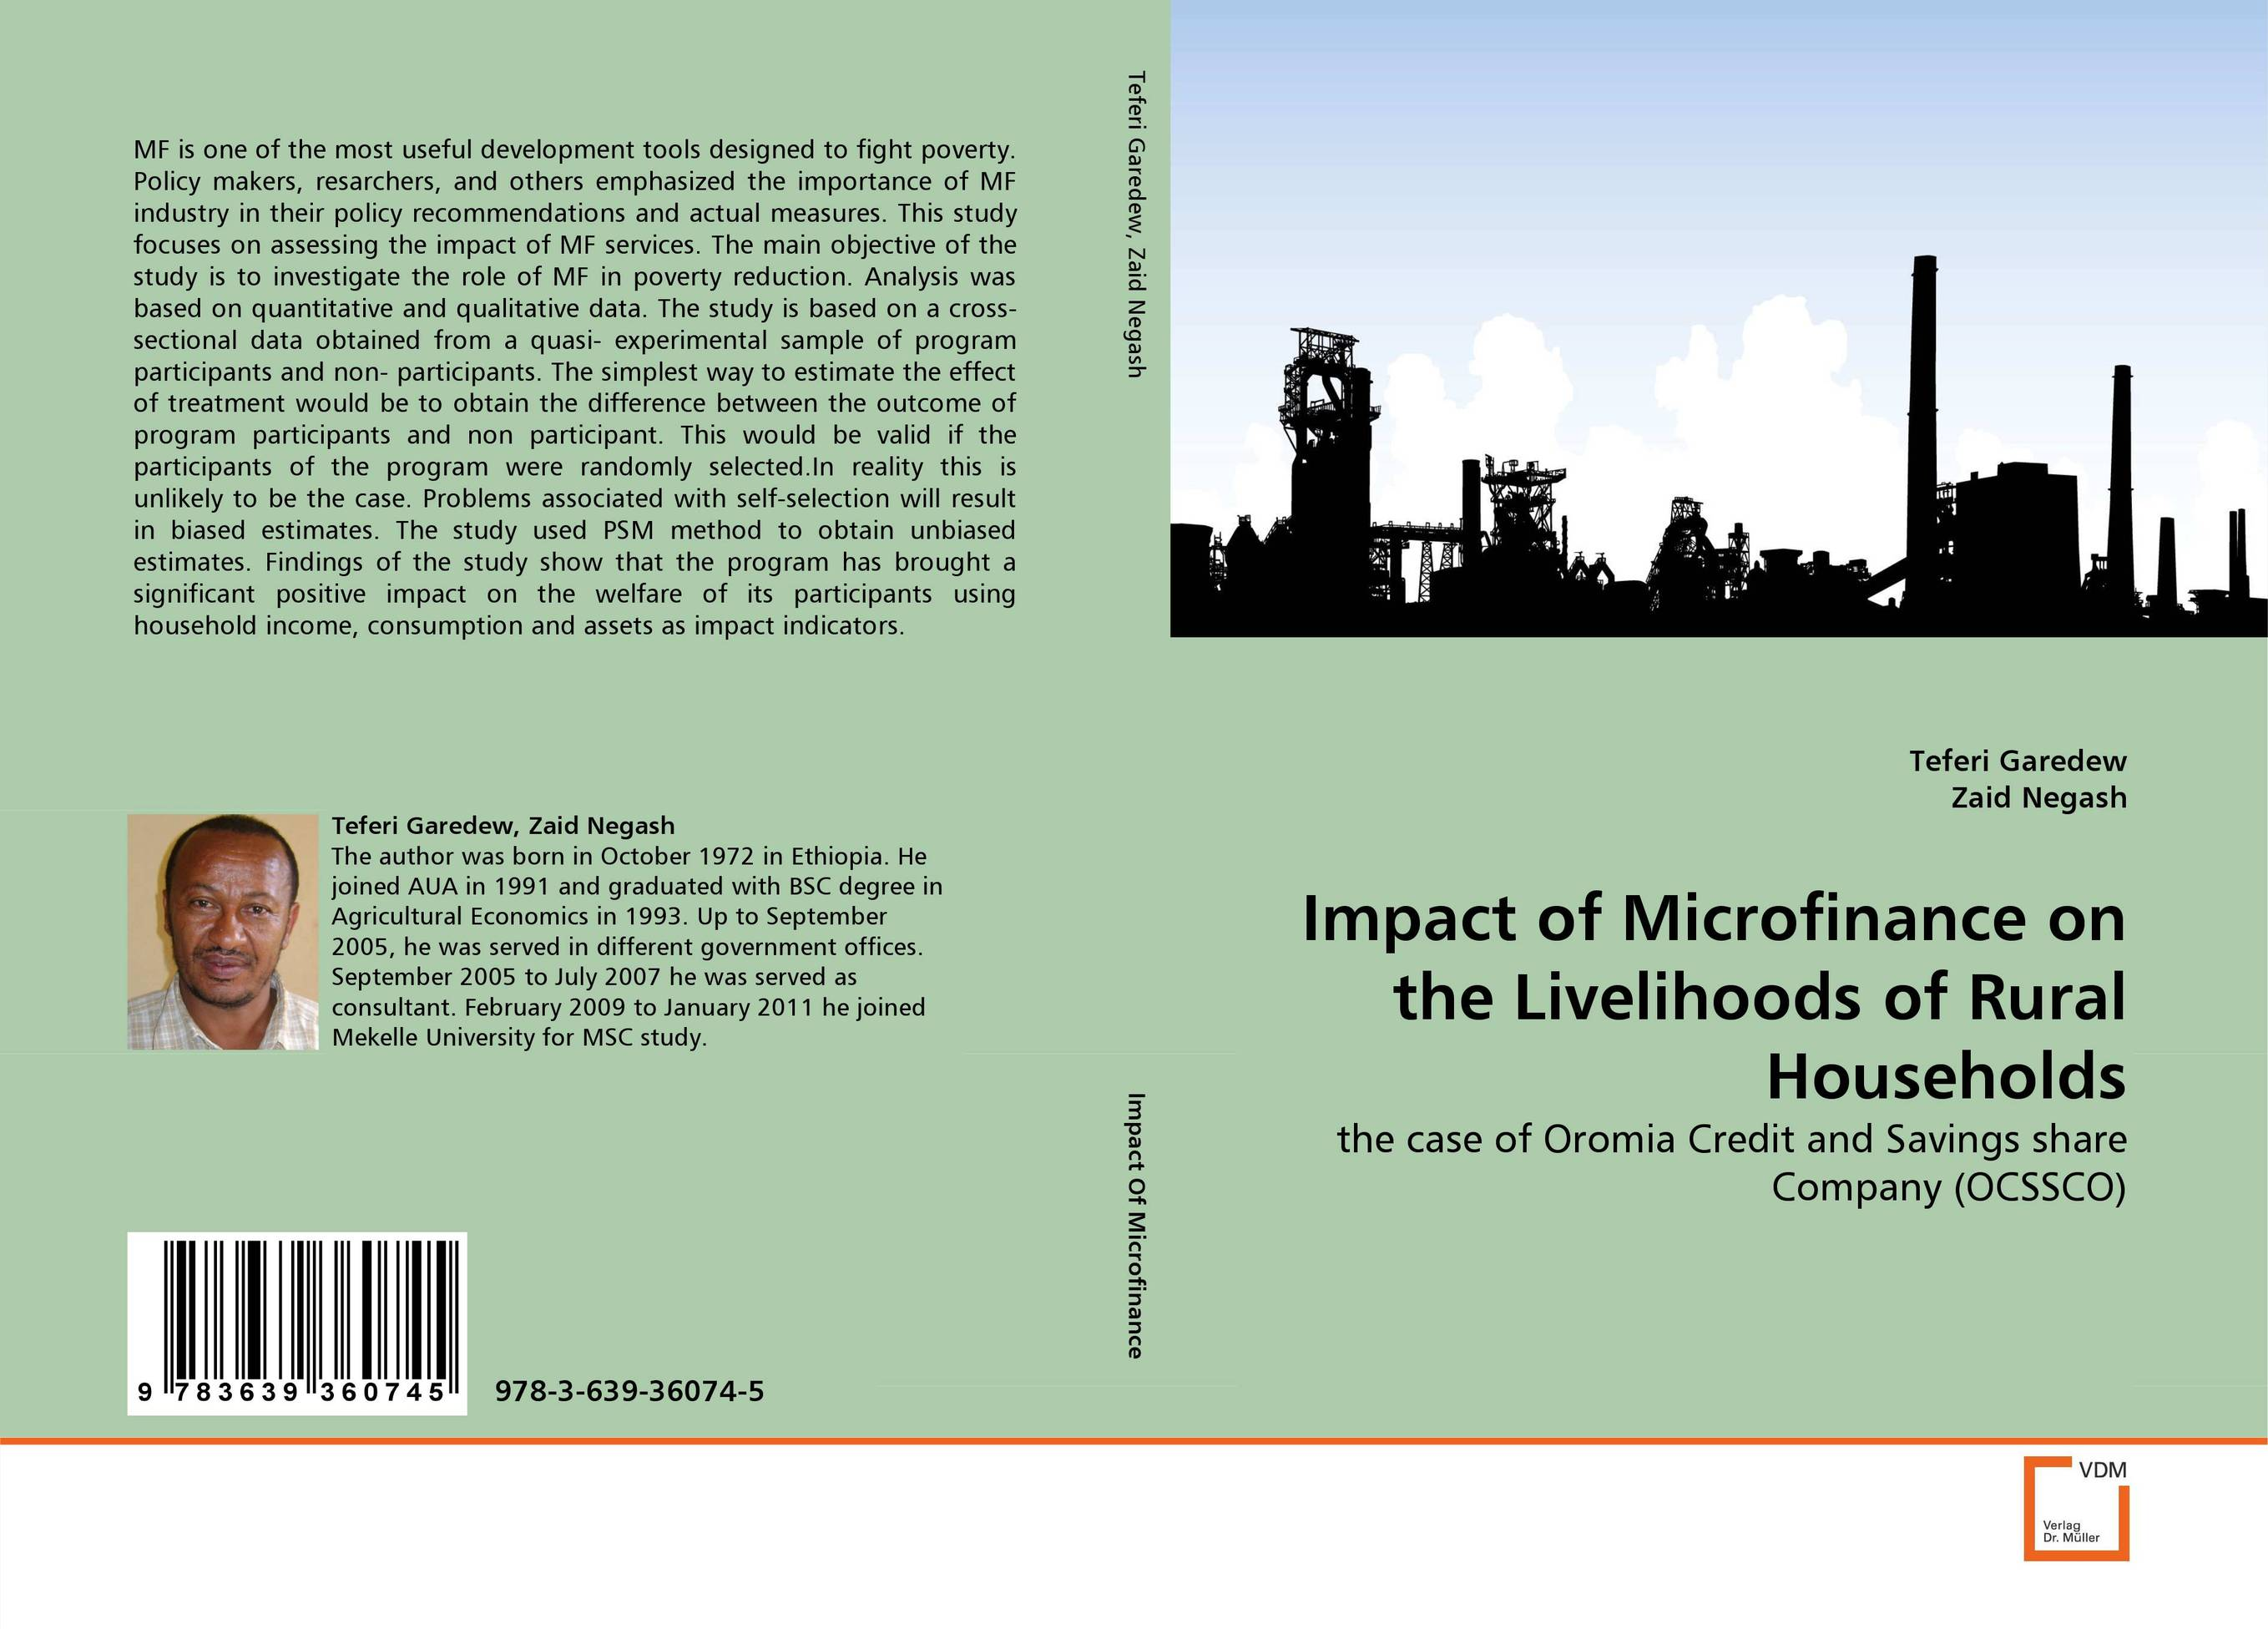 Impact of Microfinance on the Livelihoods of Rural Households impact of asset transfer program on landholdings health and income